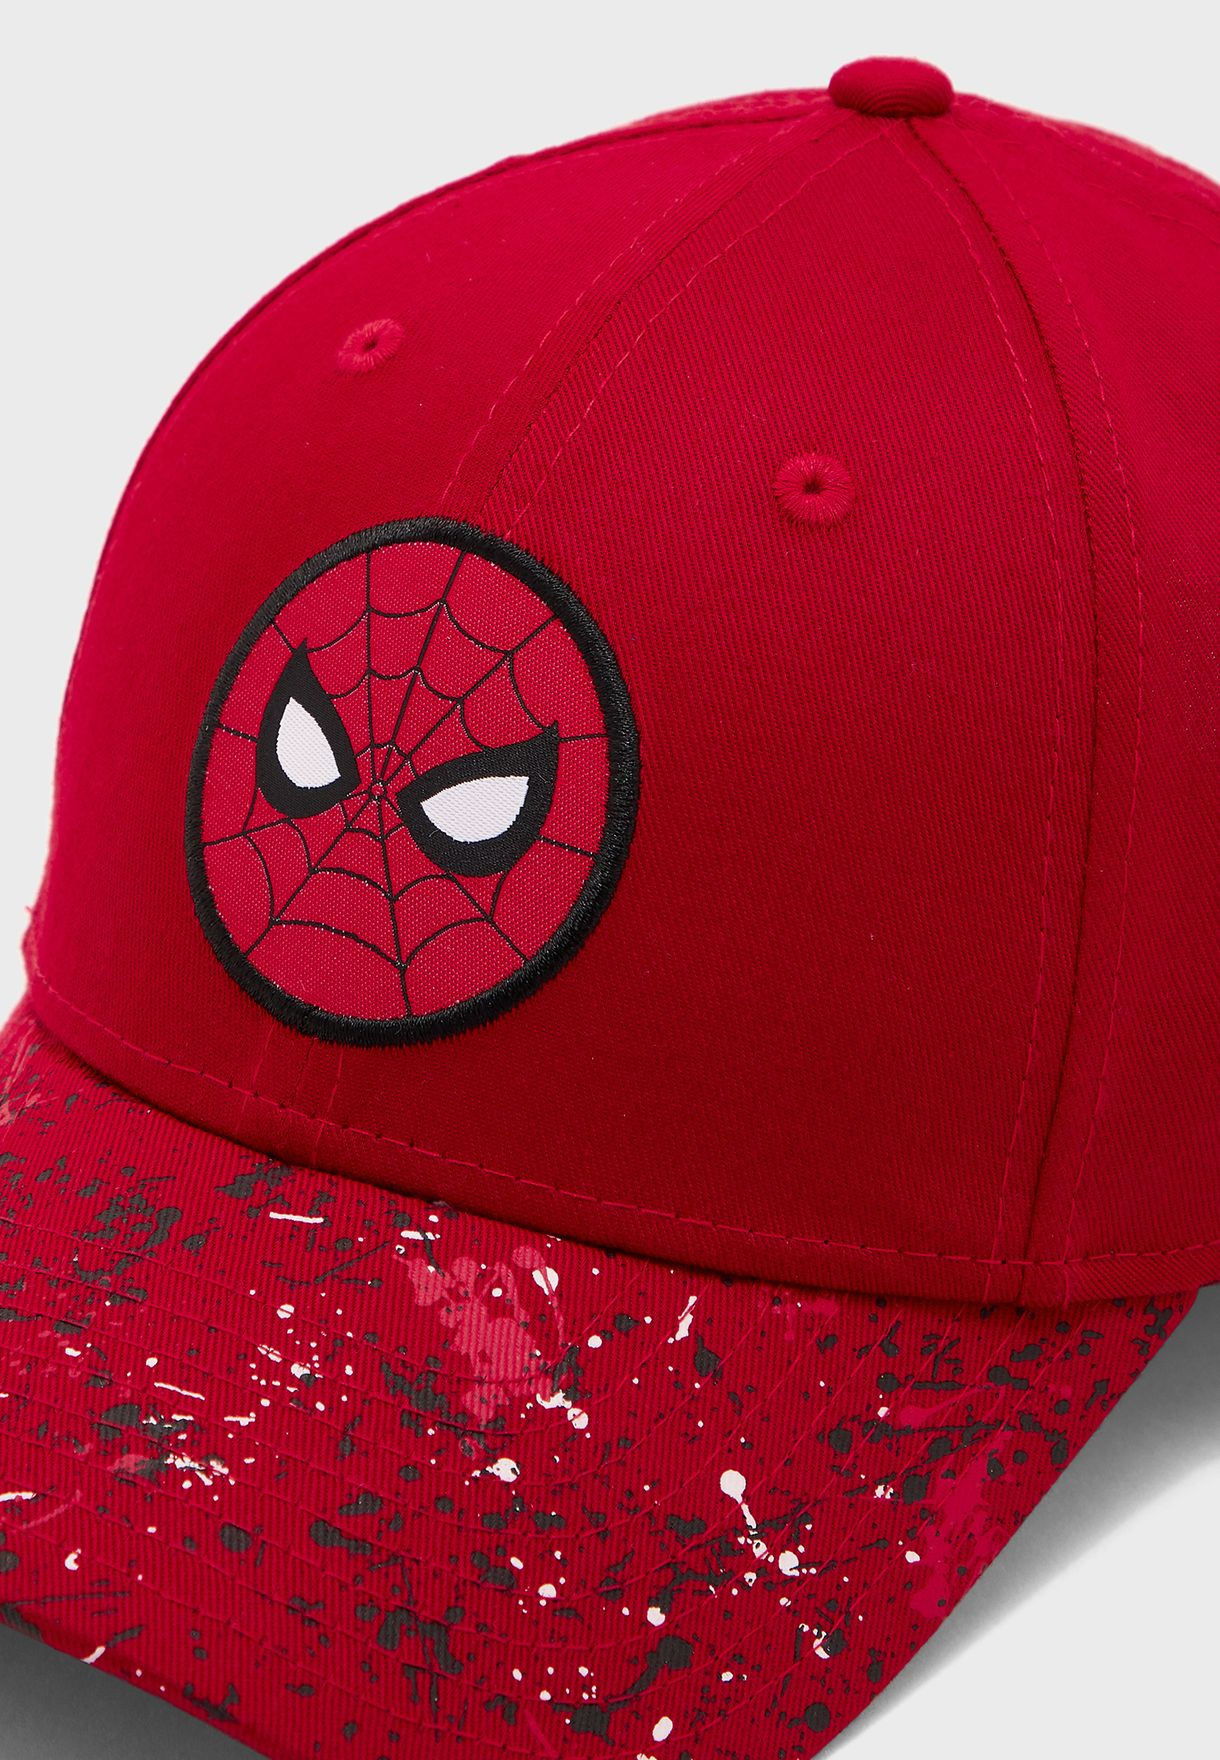 9Forty Marvel Spiderman Cap